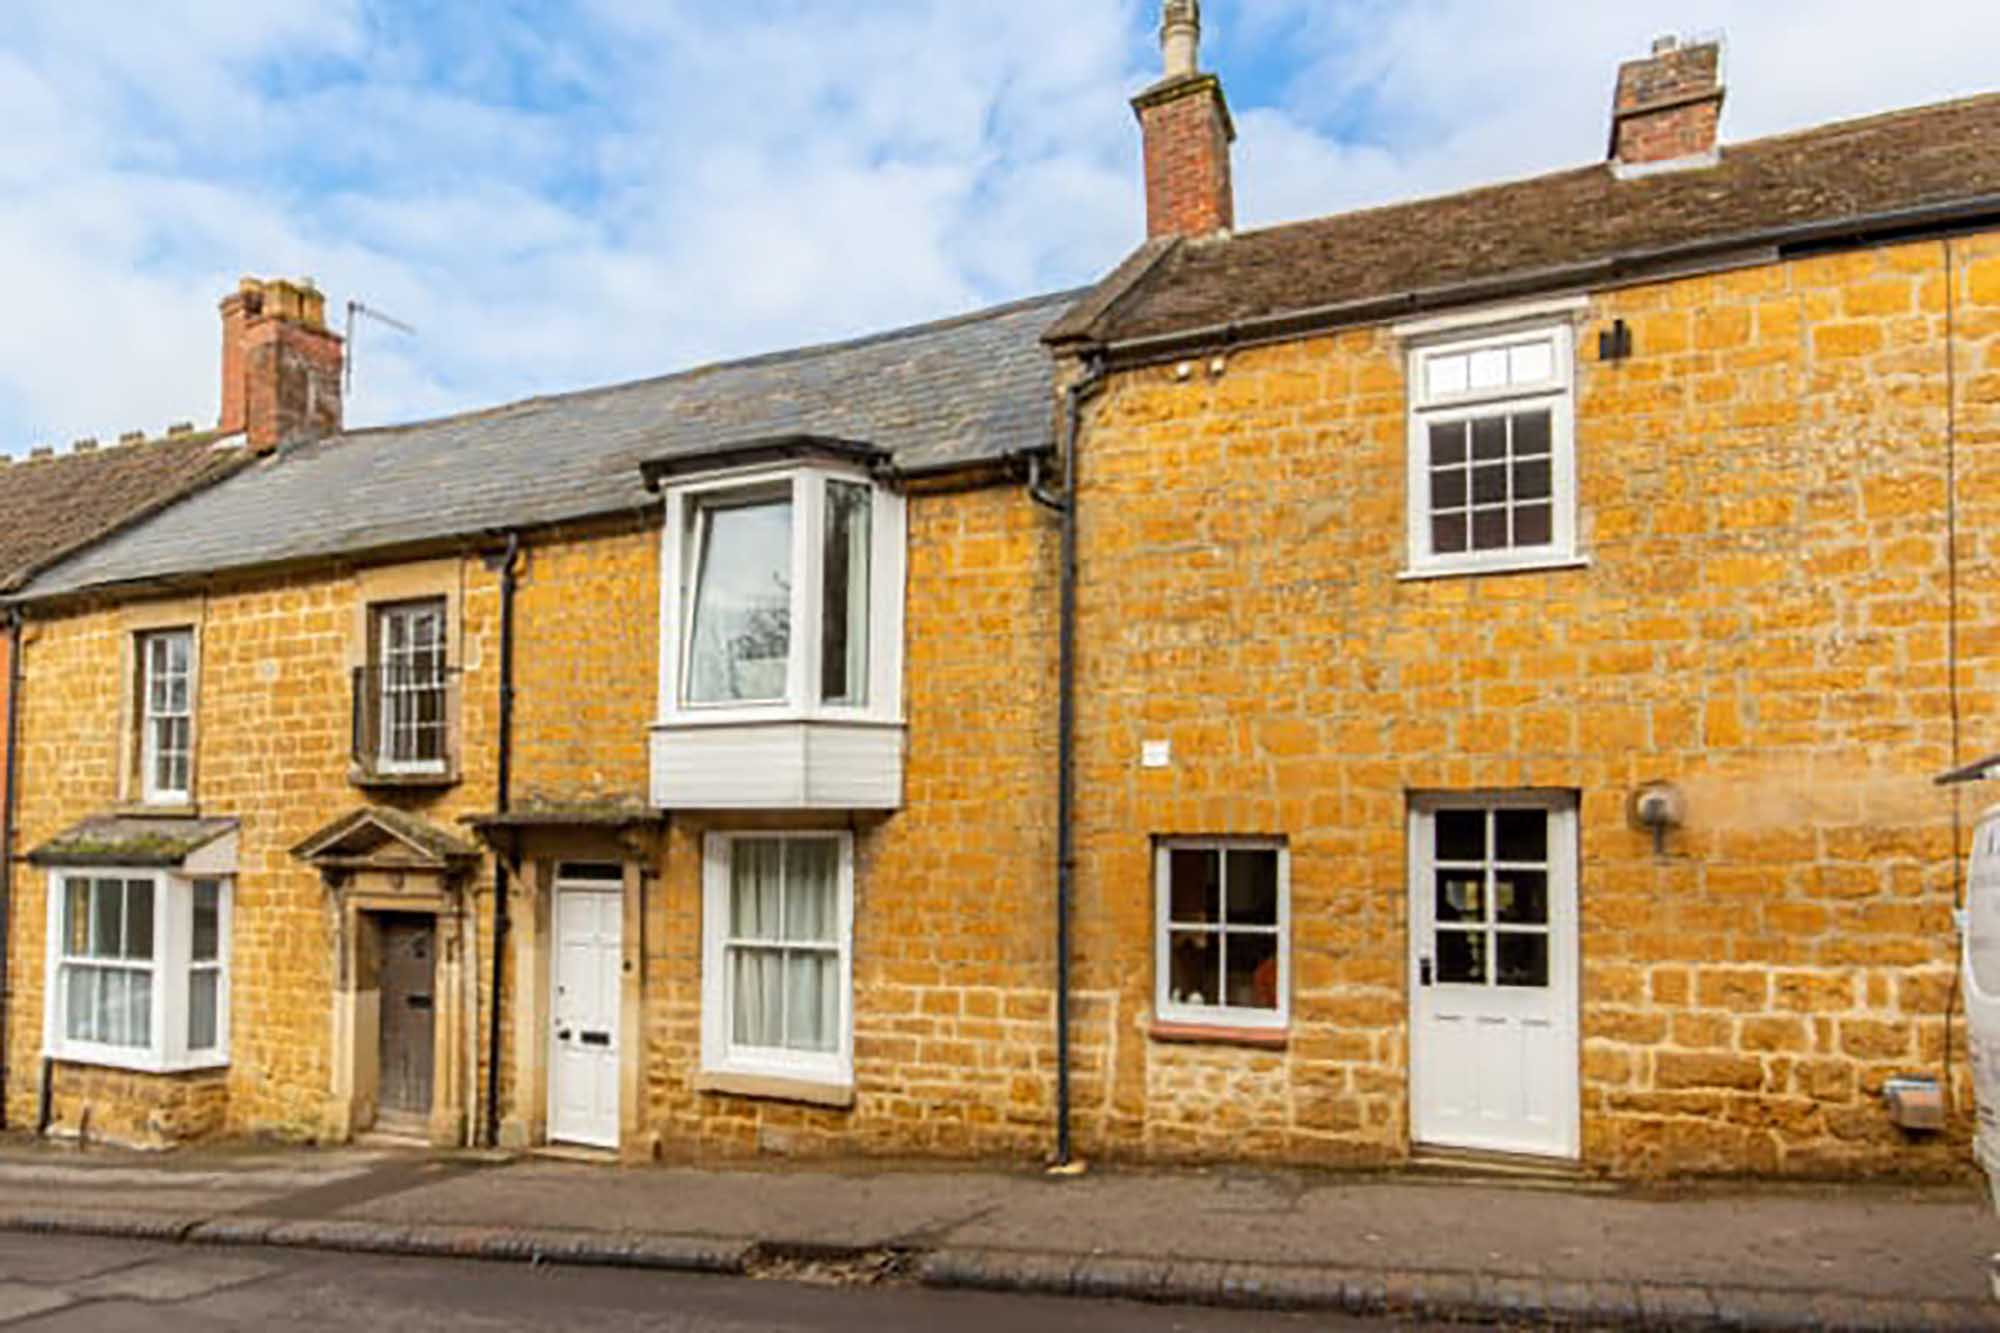 Formerly 2 cottages, a beautiful 3 bed property in the heart of Castle Cary